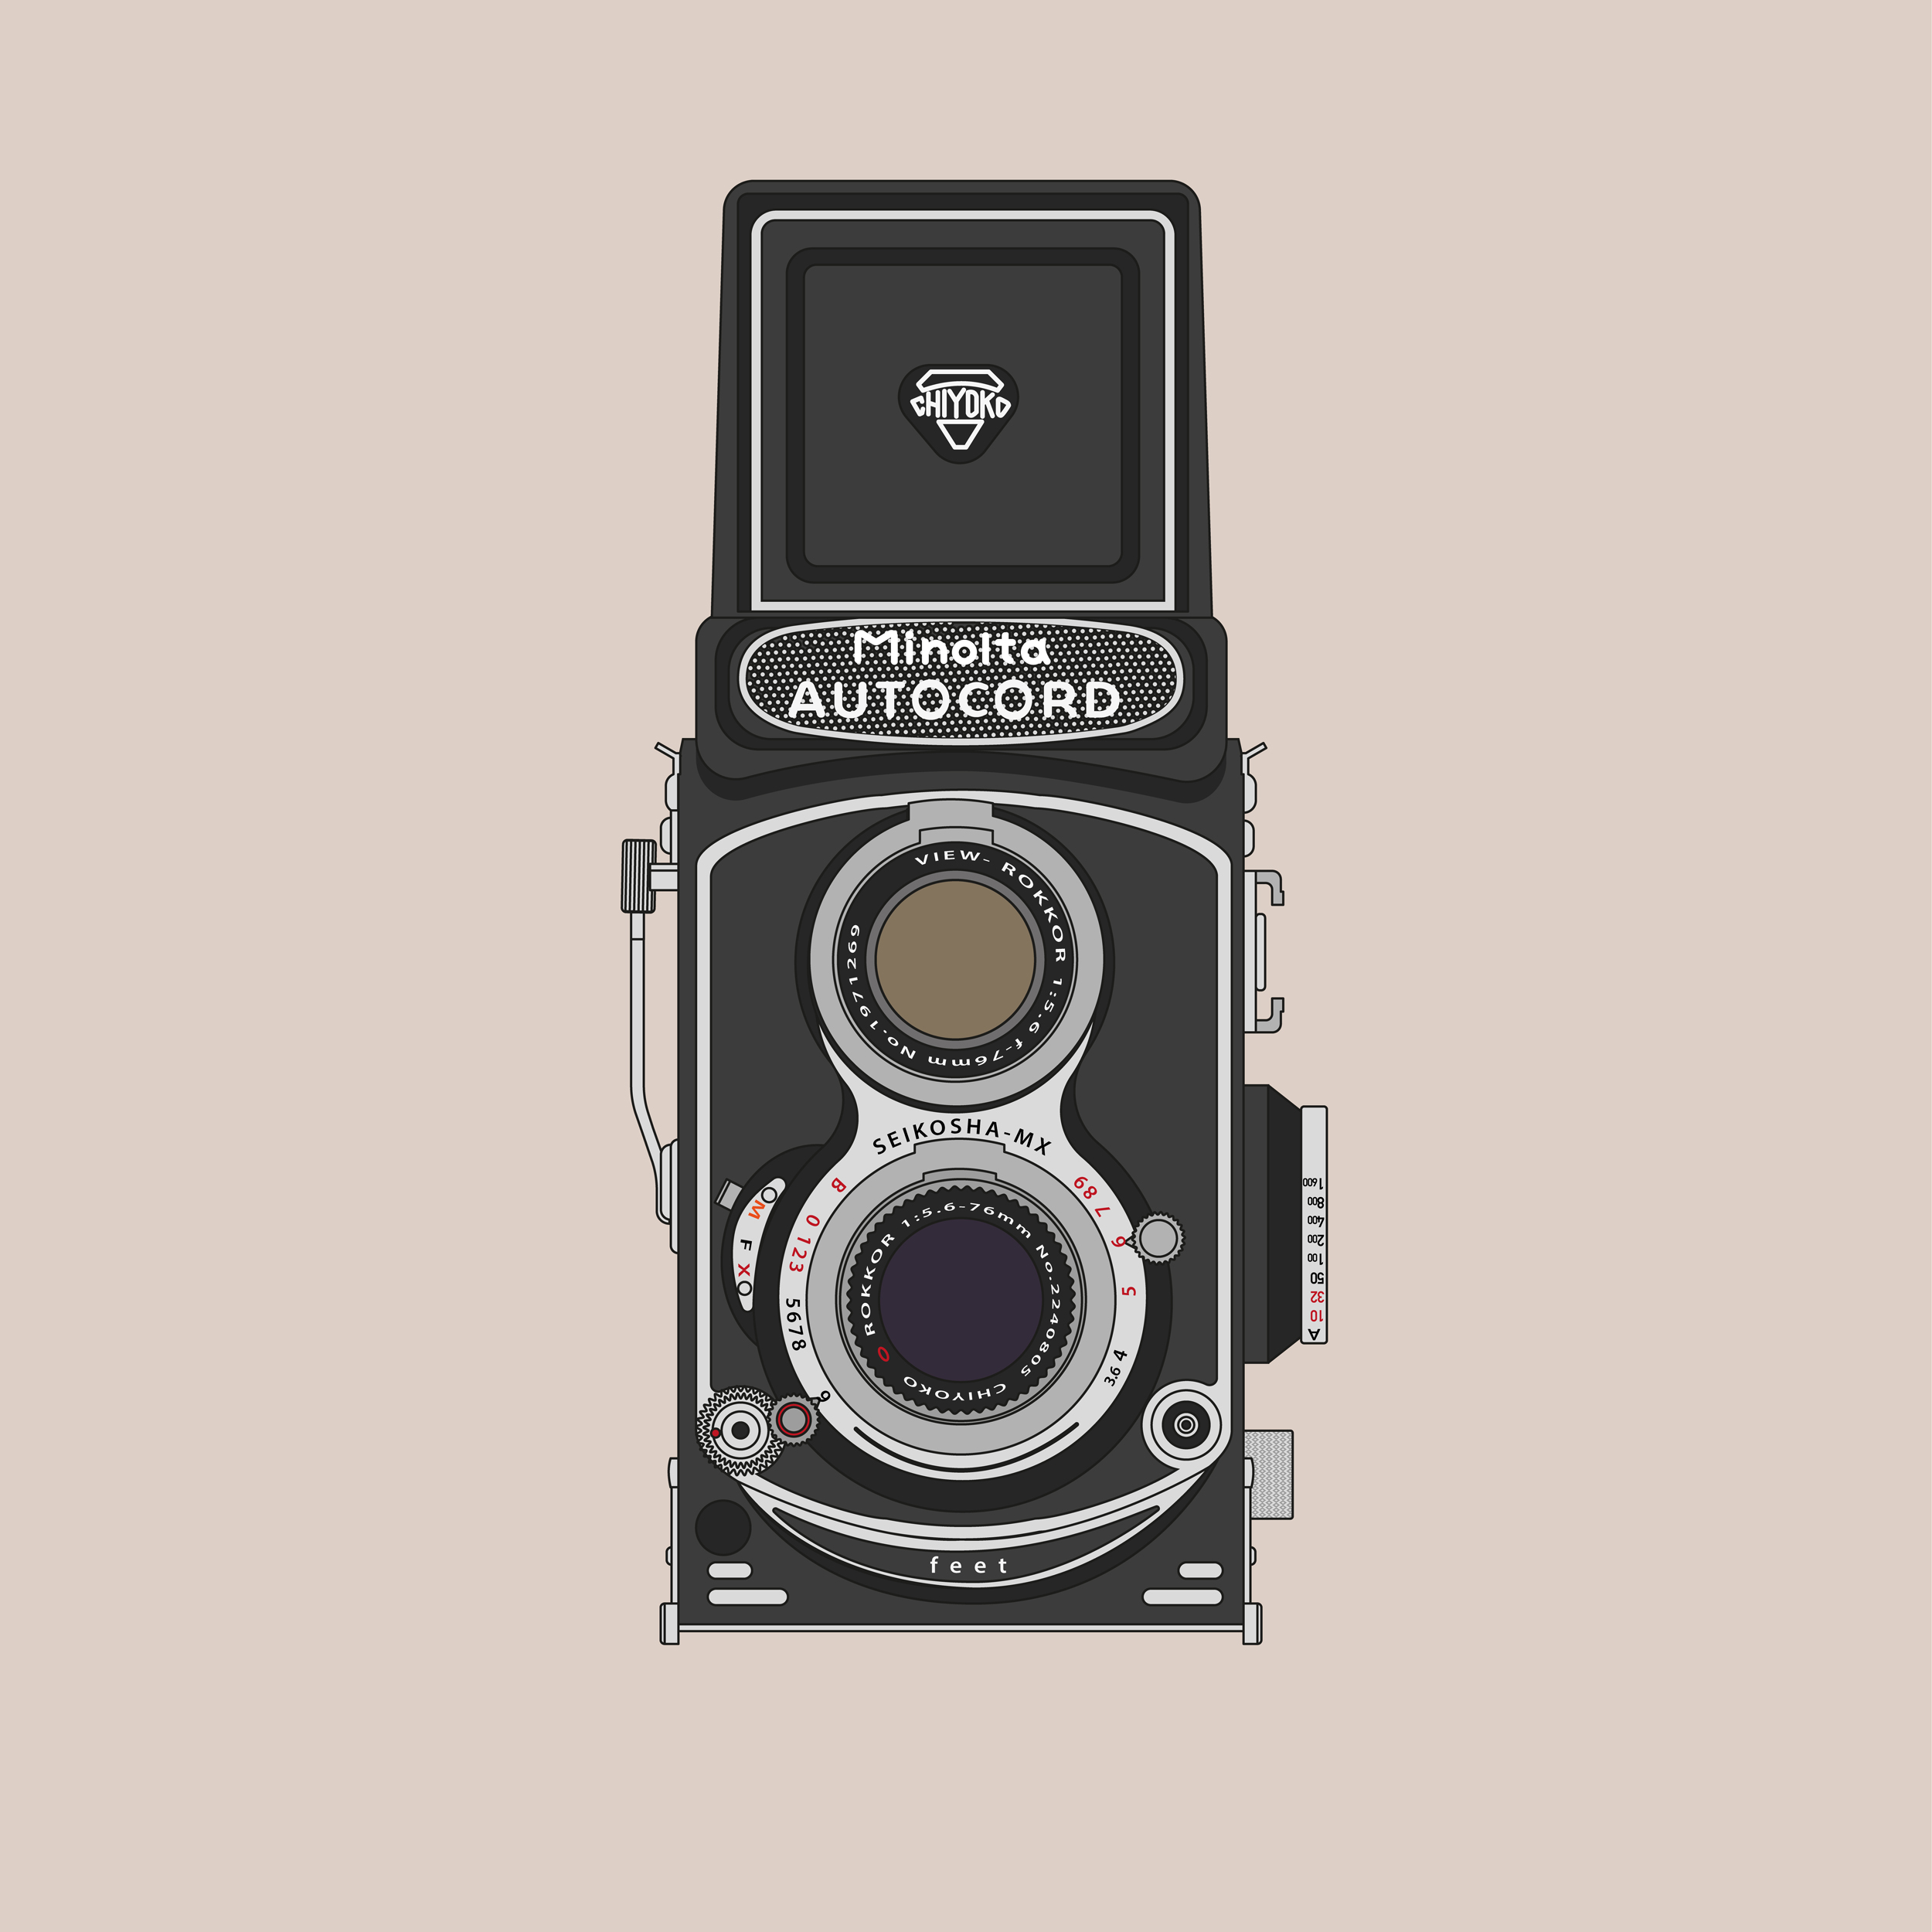 Minolta Autocord (Graphic: David Ortiz)